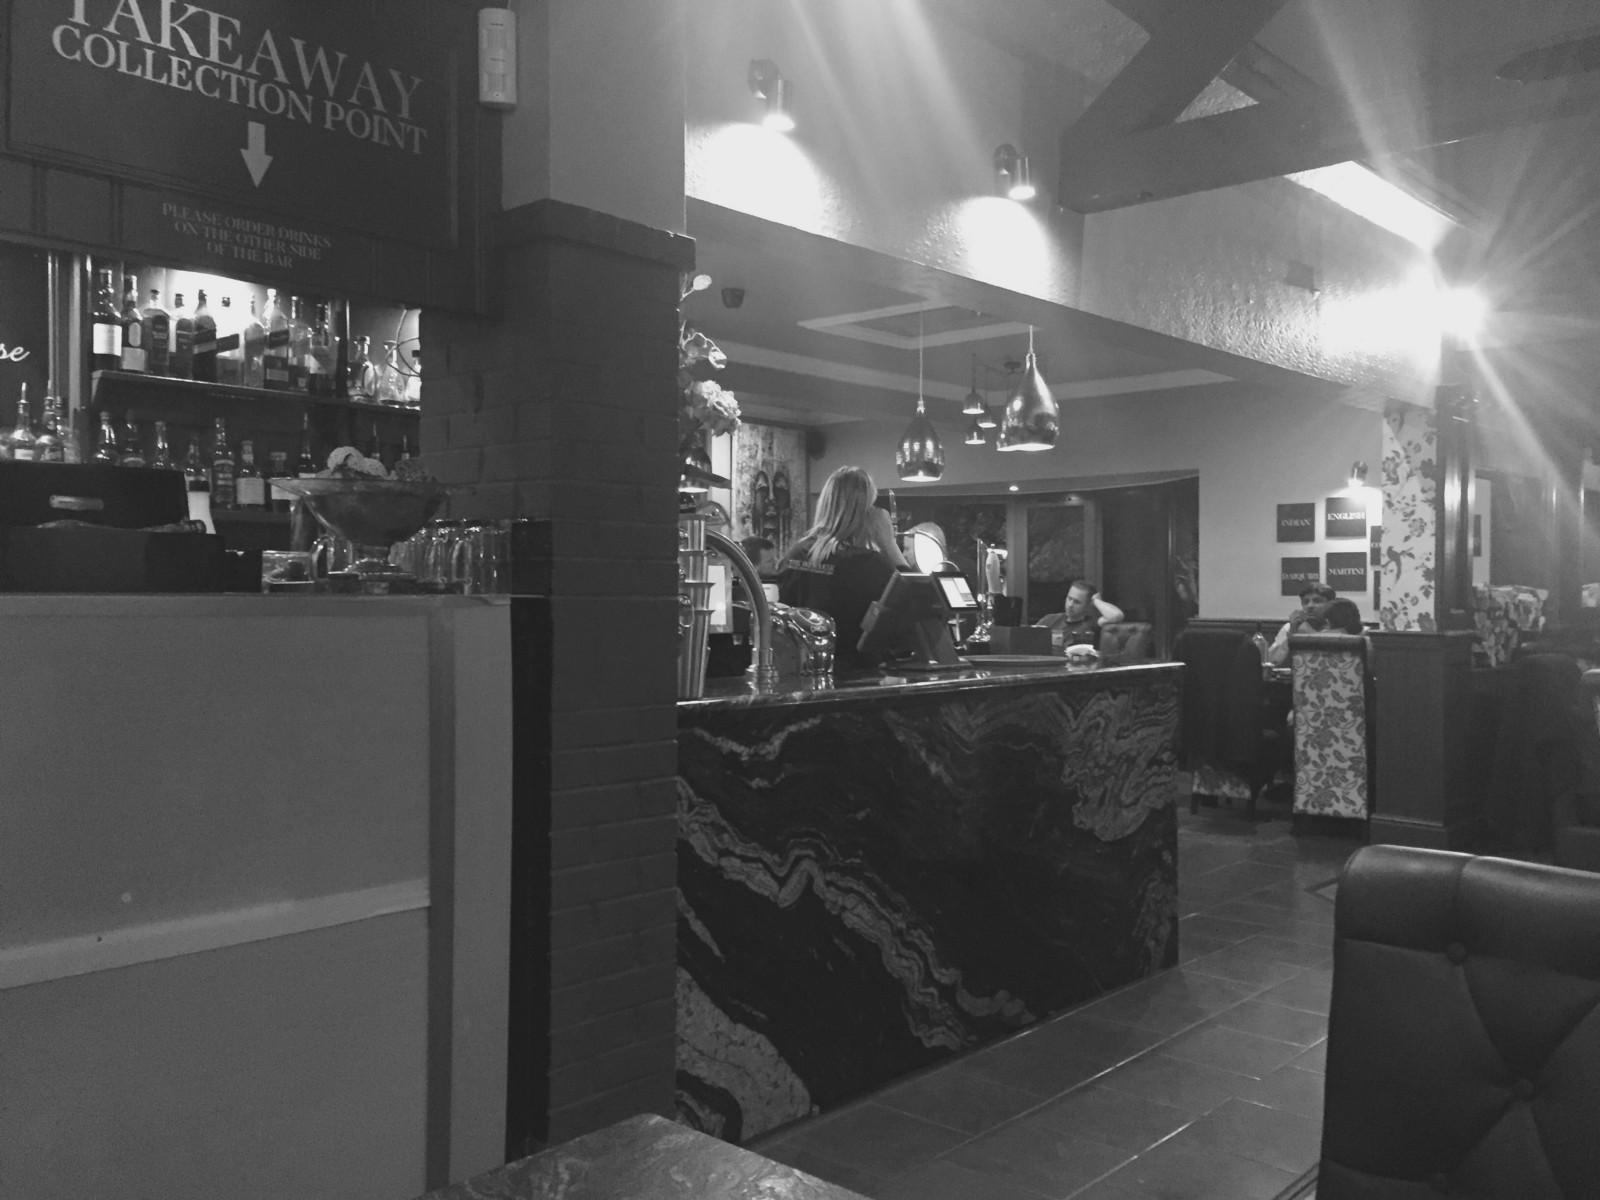 Farmhouse Coventry The Farmhouse Restaurant Review In Coventry Abdul Shakur Medium